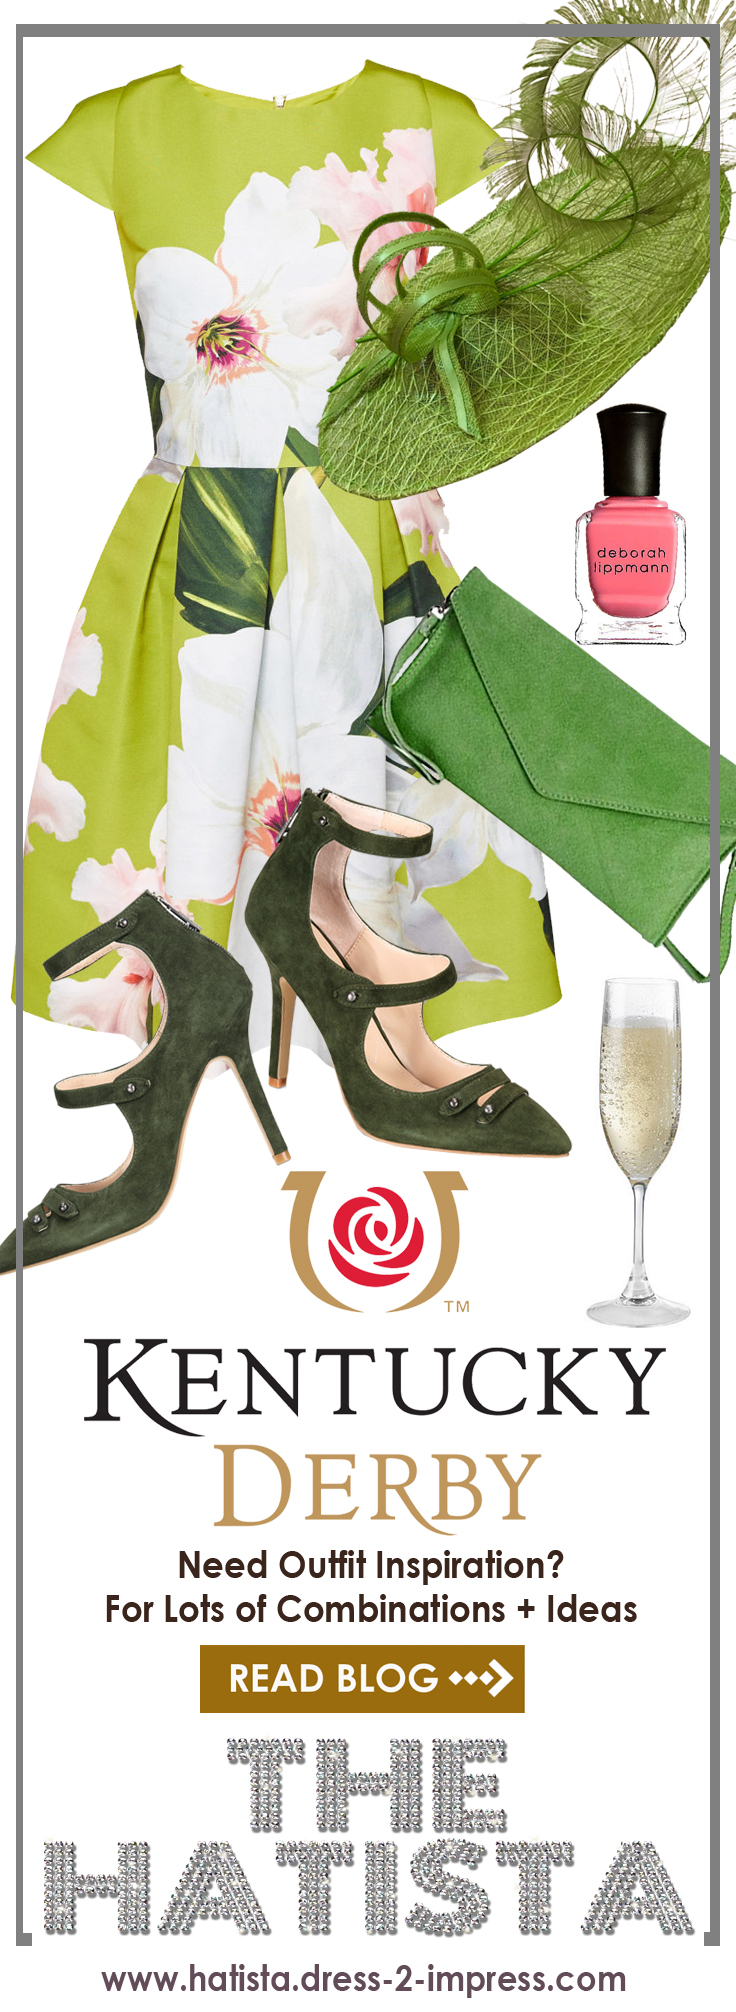 Outfit inspiration, ideas for a day at the races. Kentucky Derby outfits inspiration, what to wear to Royal Ascot Ladies Day from the Hatista #hatista #kentuckyderby #royalascot #fashionblogger #fashion #outfits #outfitideas #derbyhats